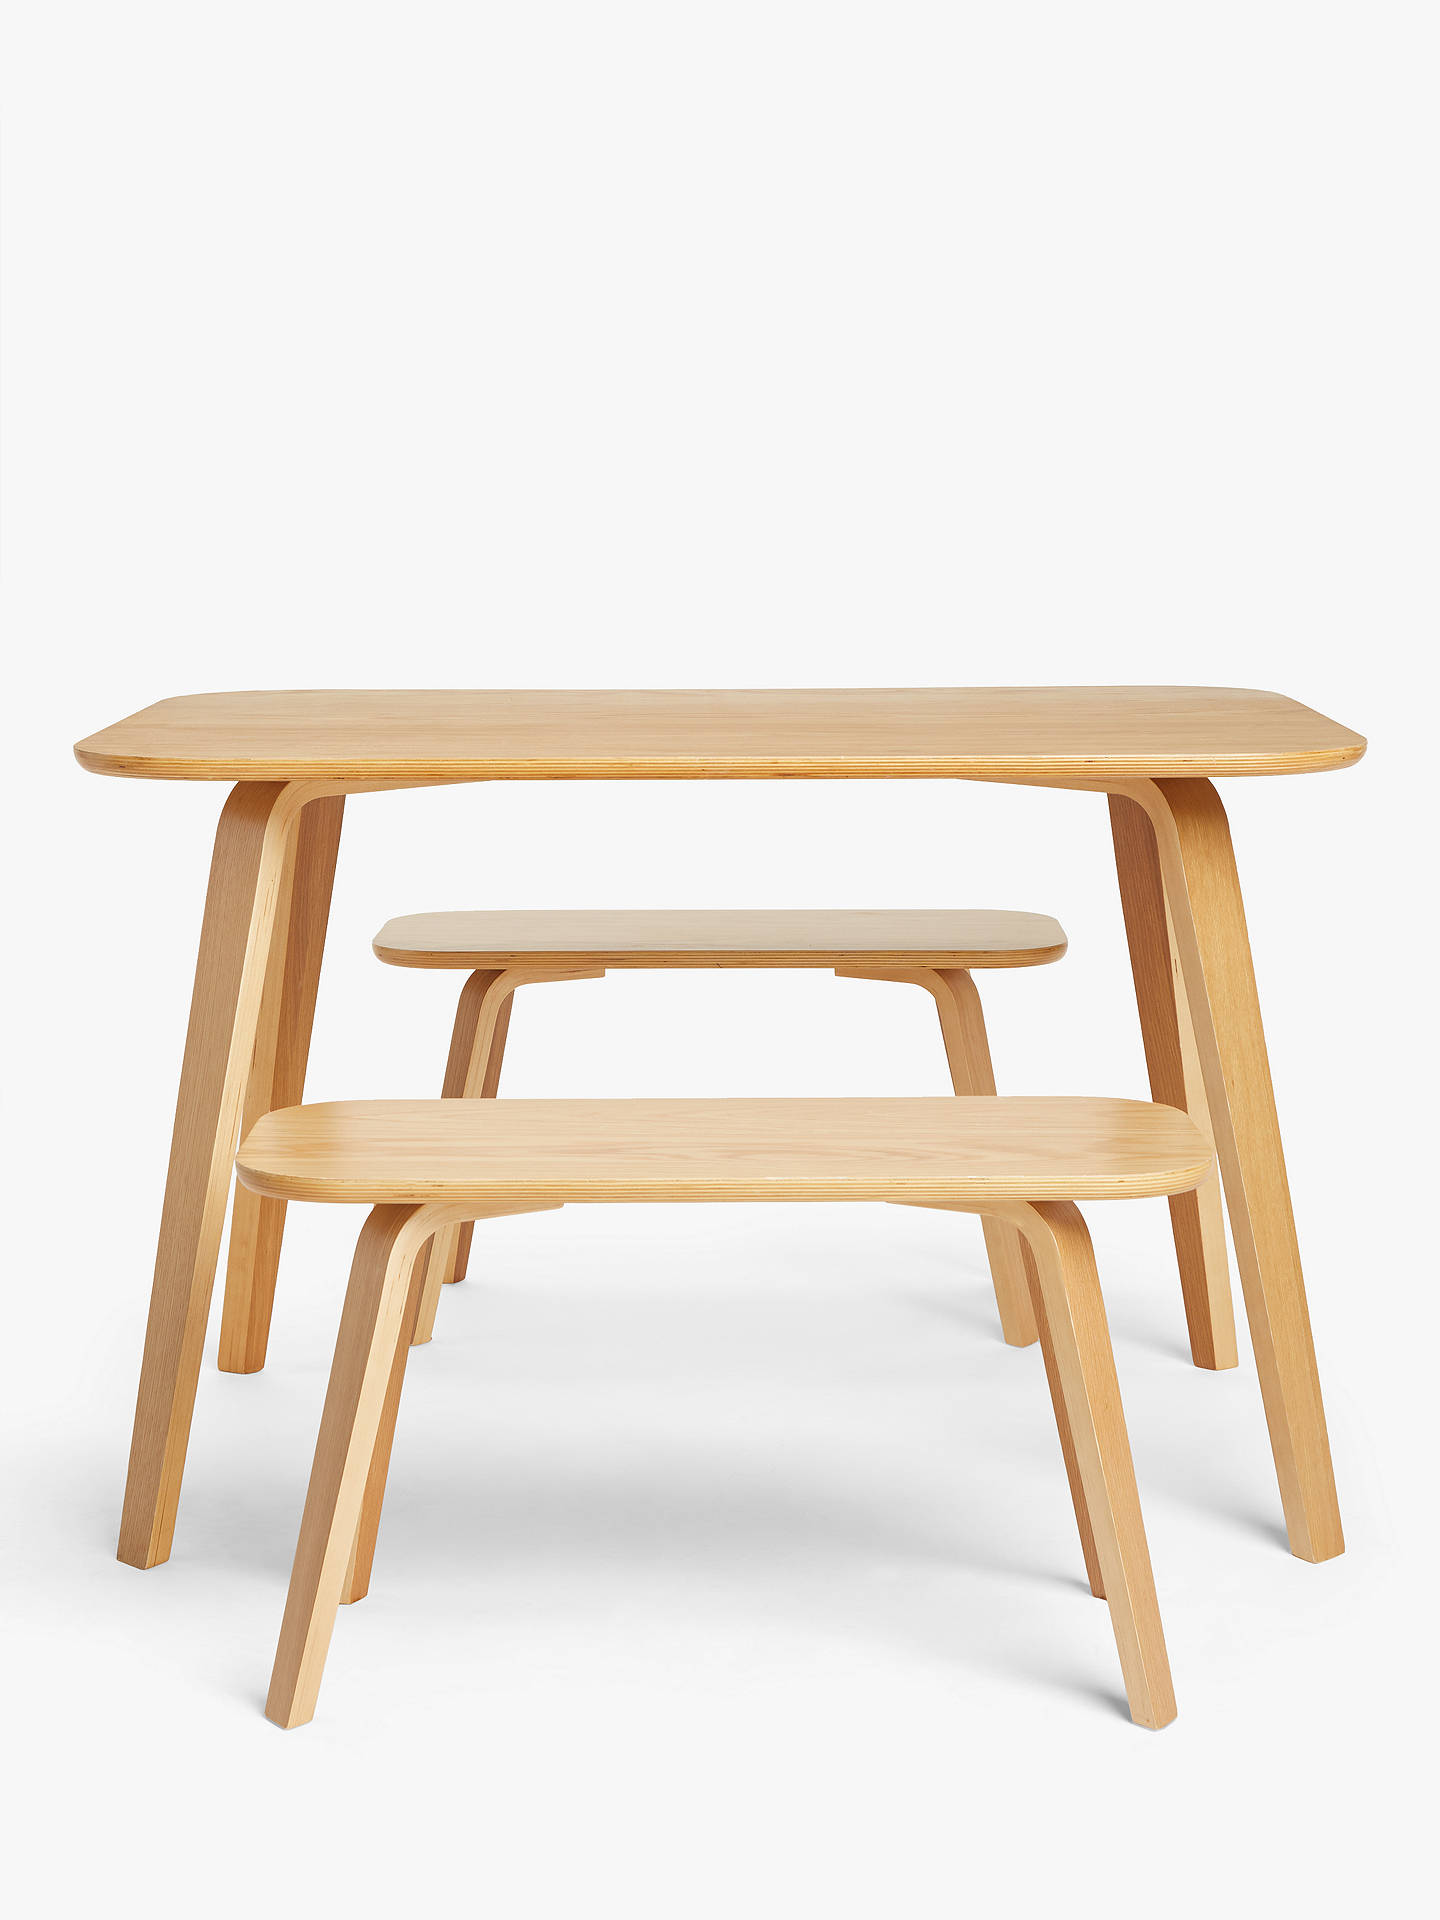 Sensational House By John Lewis Anton 6 Seater Dining Table And 2 Seater Benches Oak Gmtry Best Dining Table And Chair Ideas Images Gmtryco